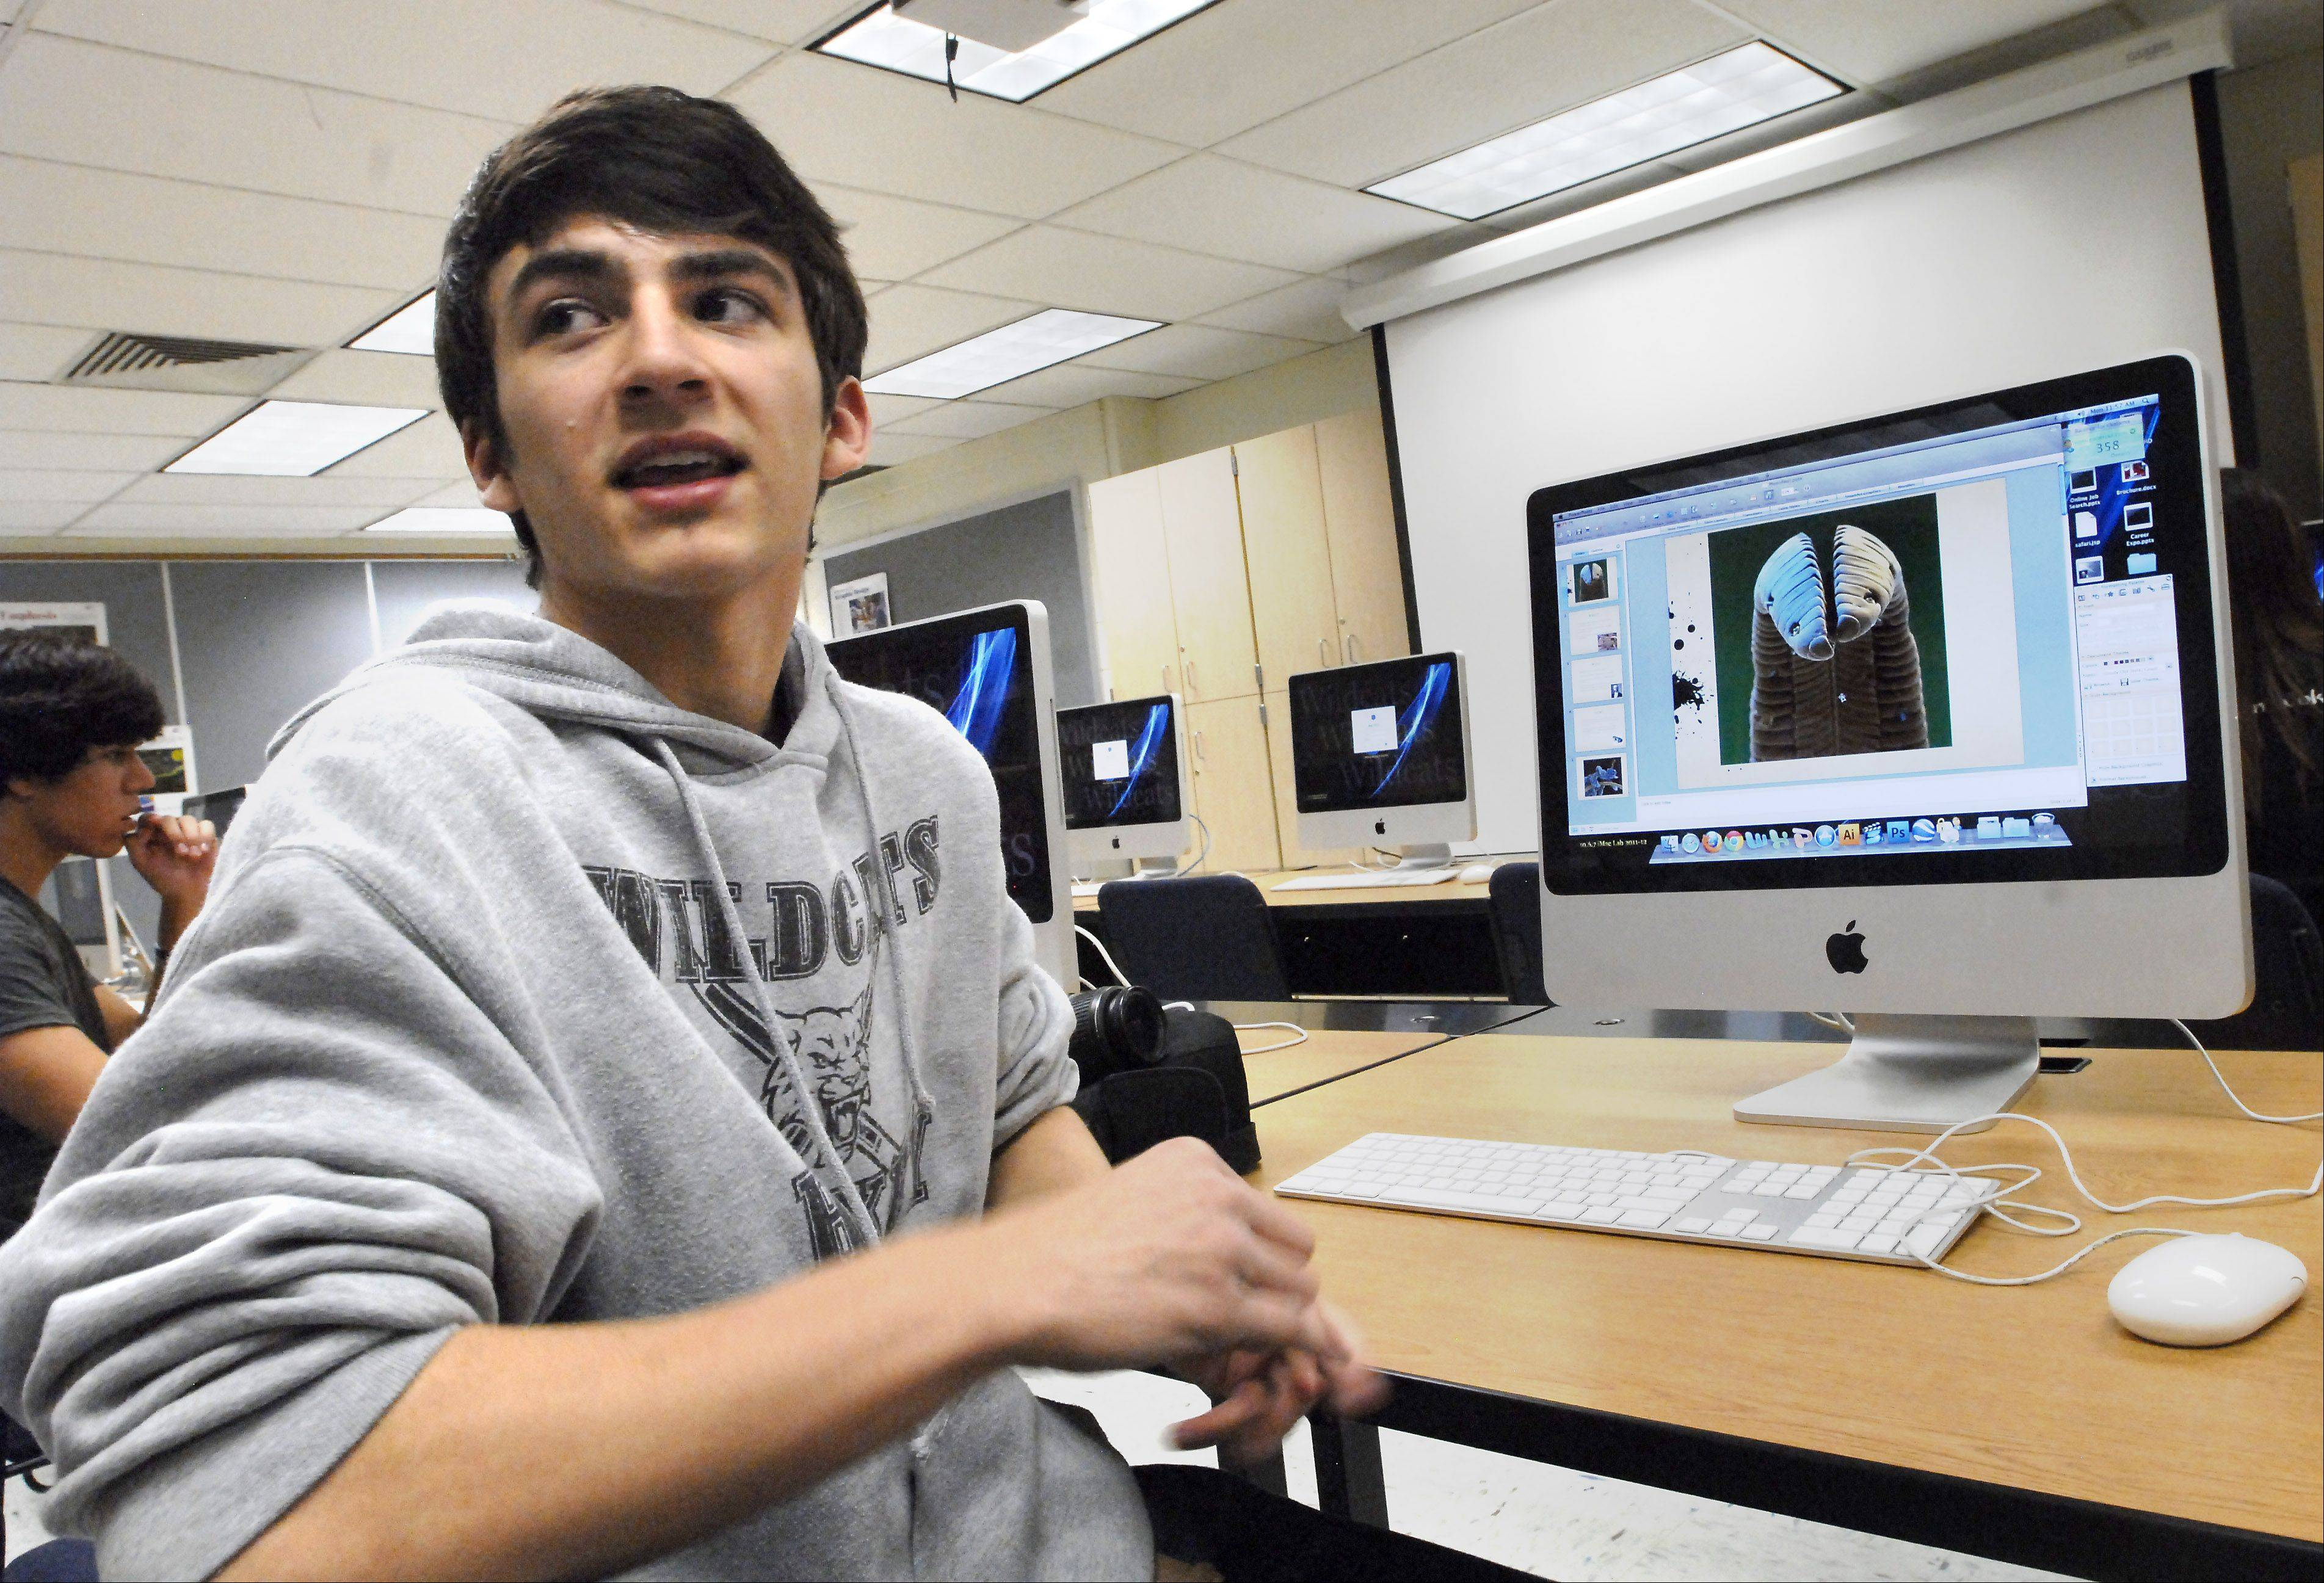 Wheeling High School sophomore Chris Kalama researches microphotography in the school's new digital photography lab.